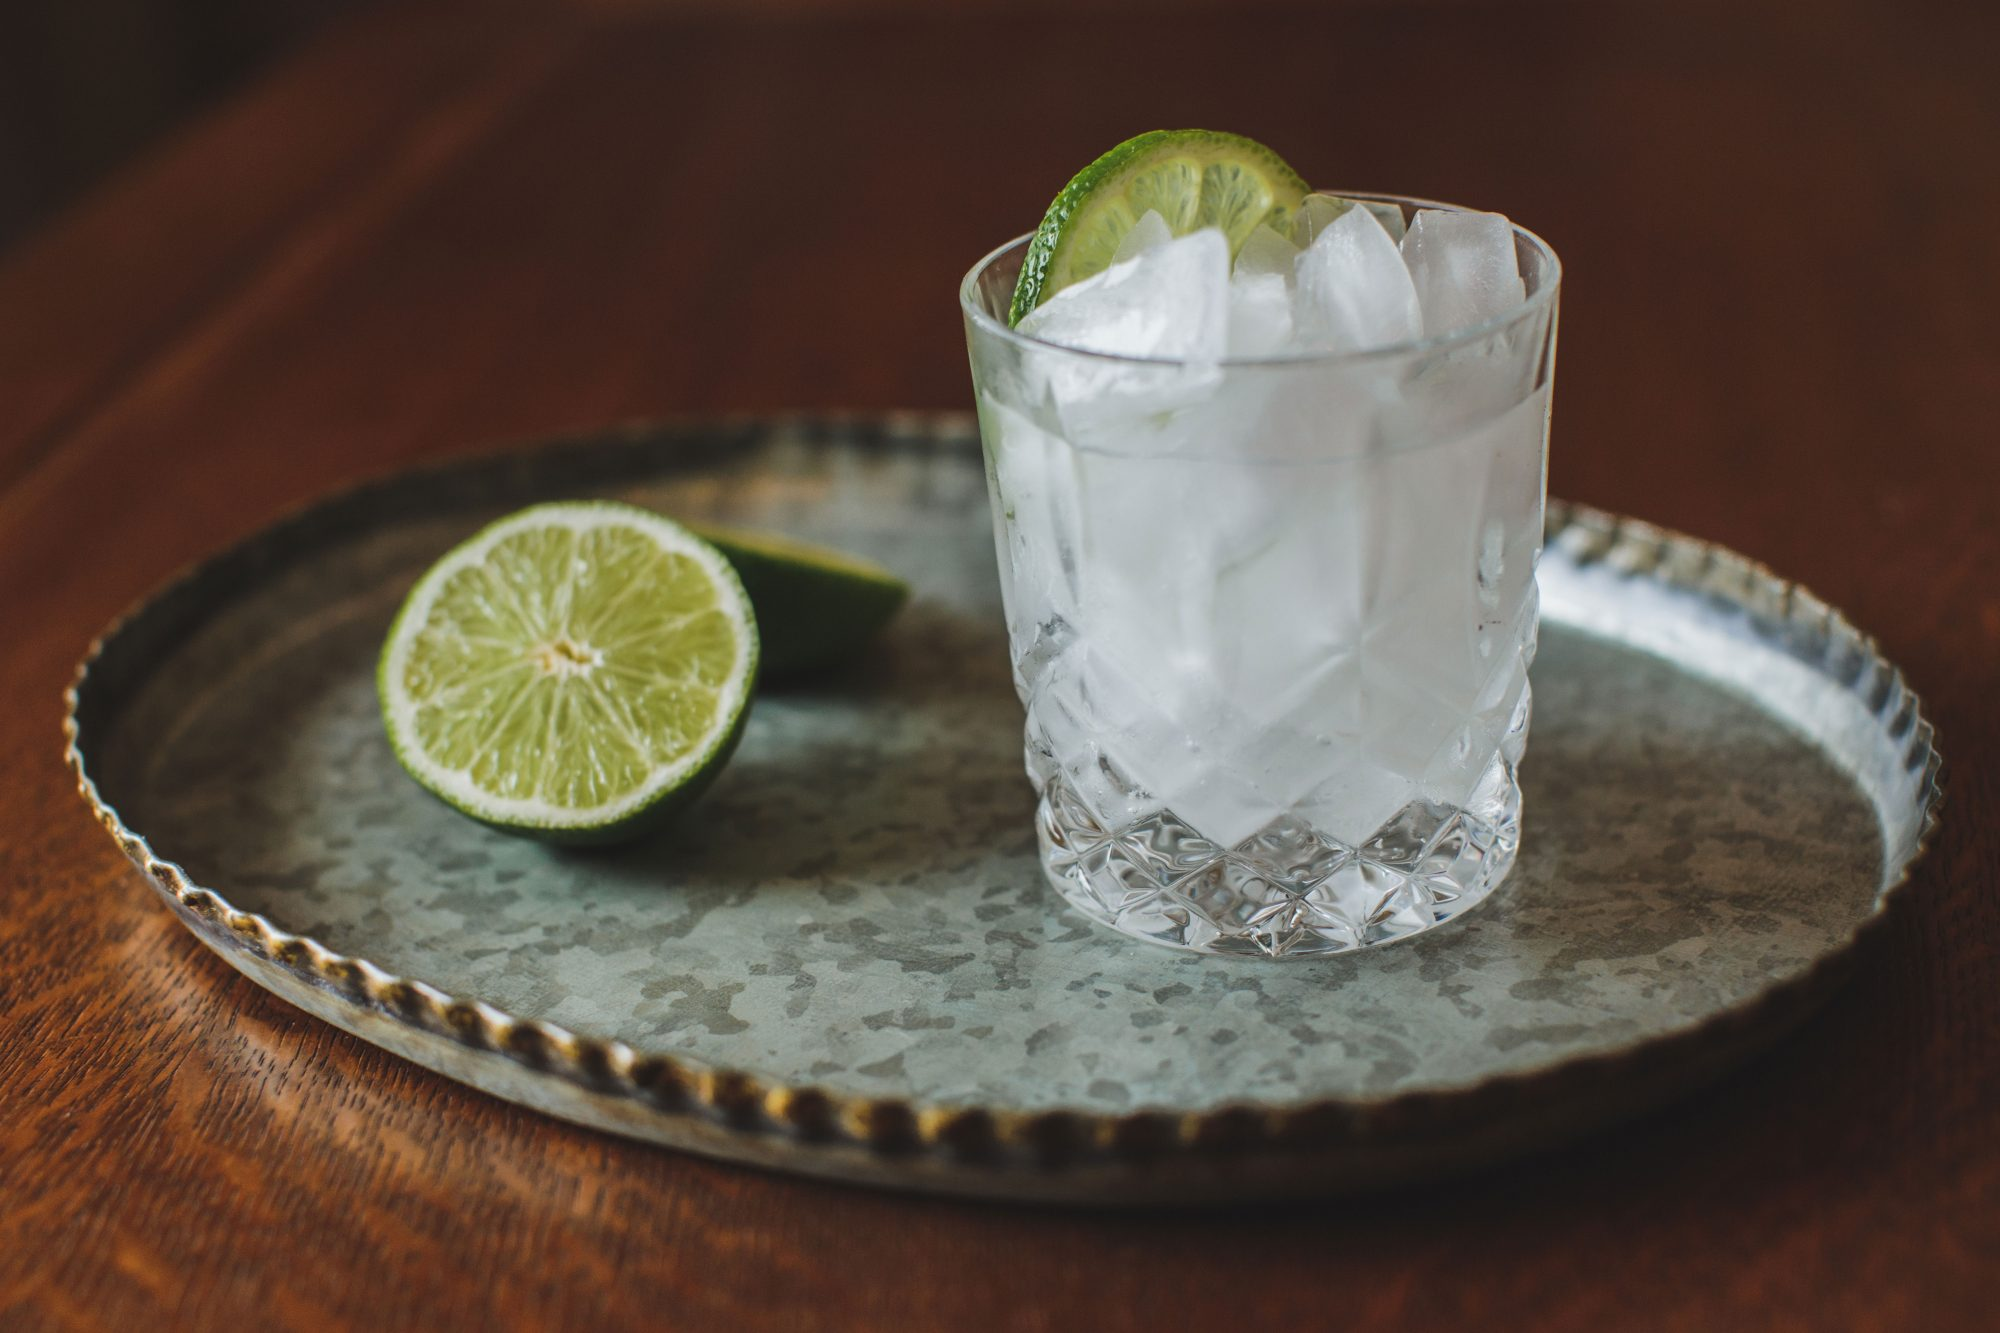 Cocktail Sitting on a Tray with Limes